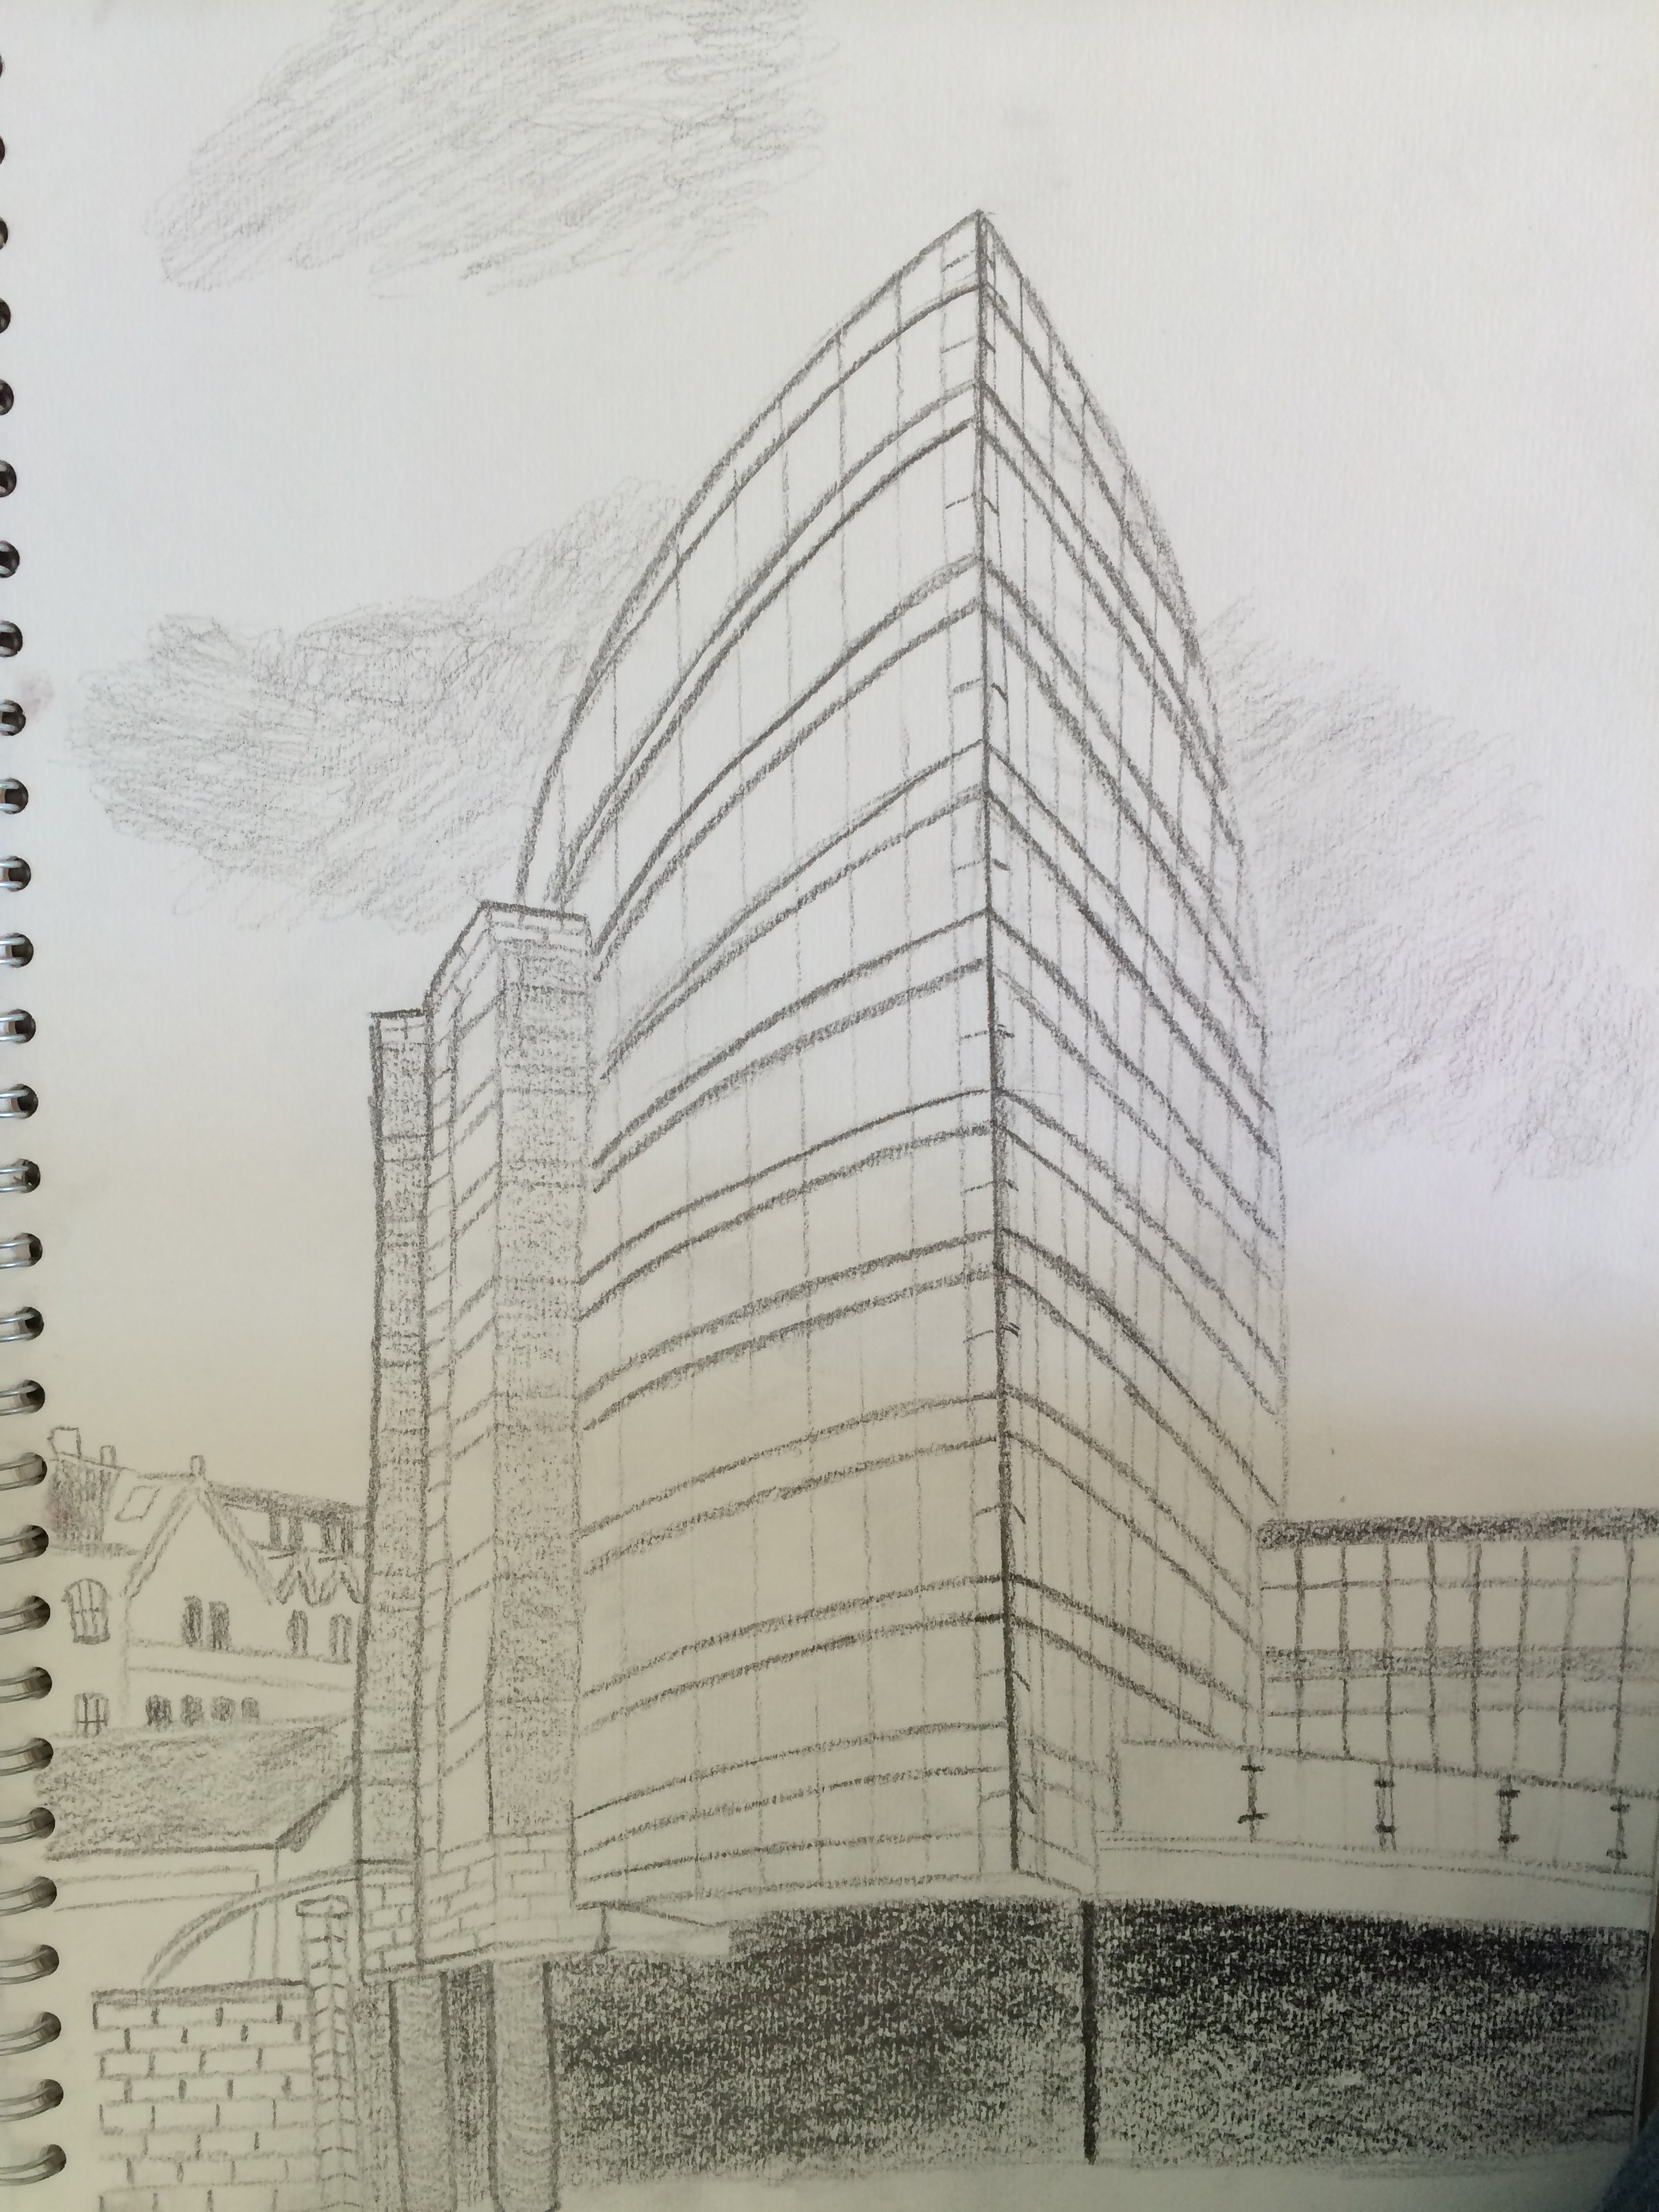 Drawn bulding  tall building Drawn Observational and Gatehaus sketch